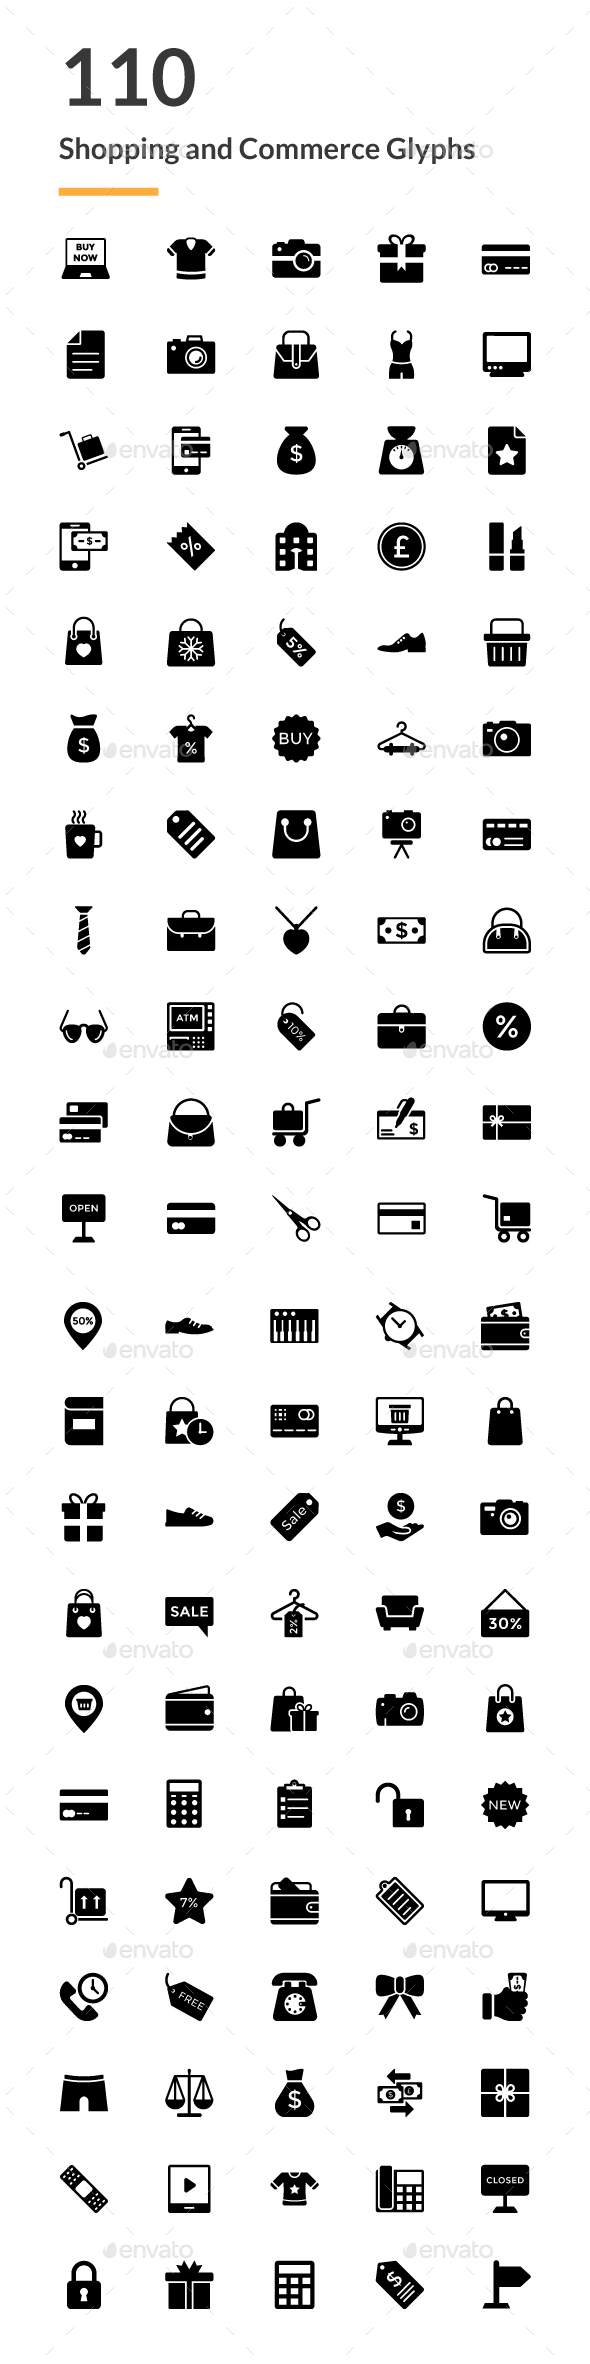 110 Shopping and Commerce Glyph Icon - Icons